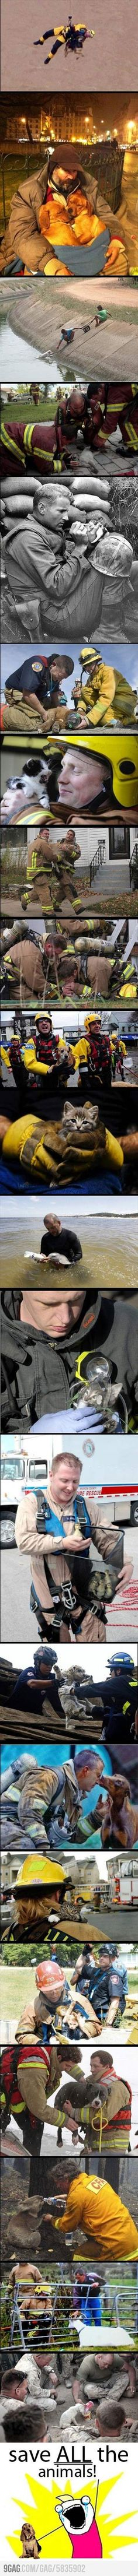 Heros rescuing animals. Too sweet.